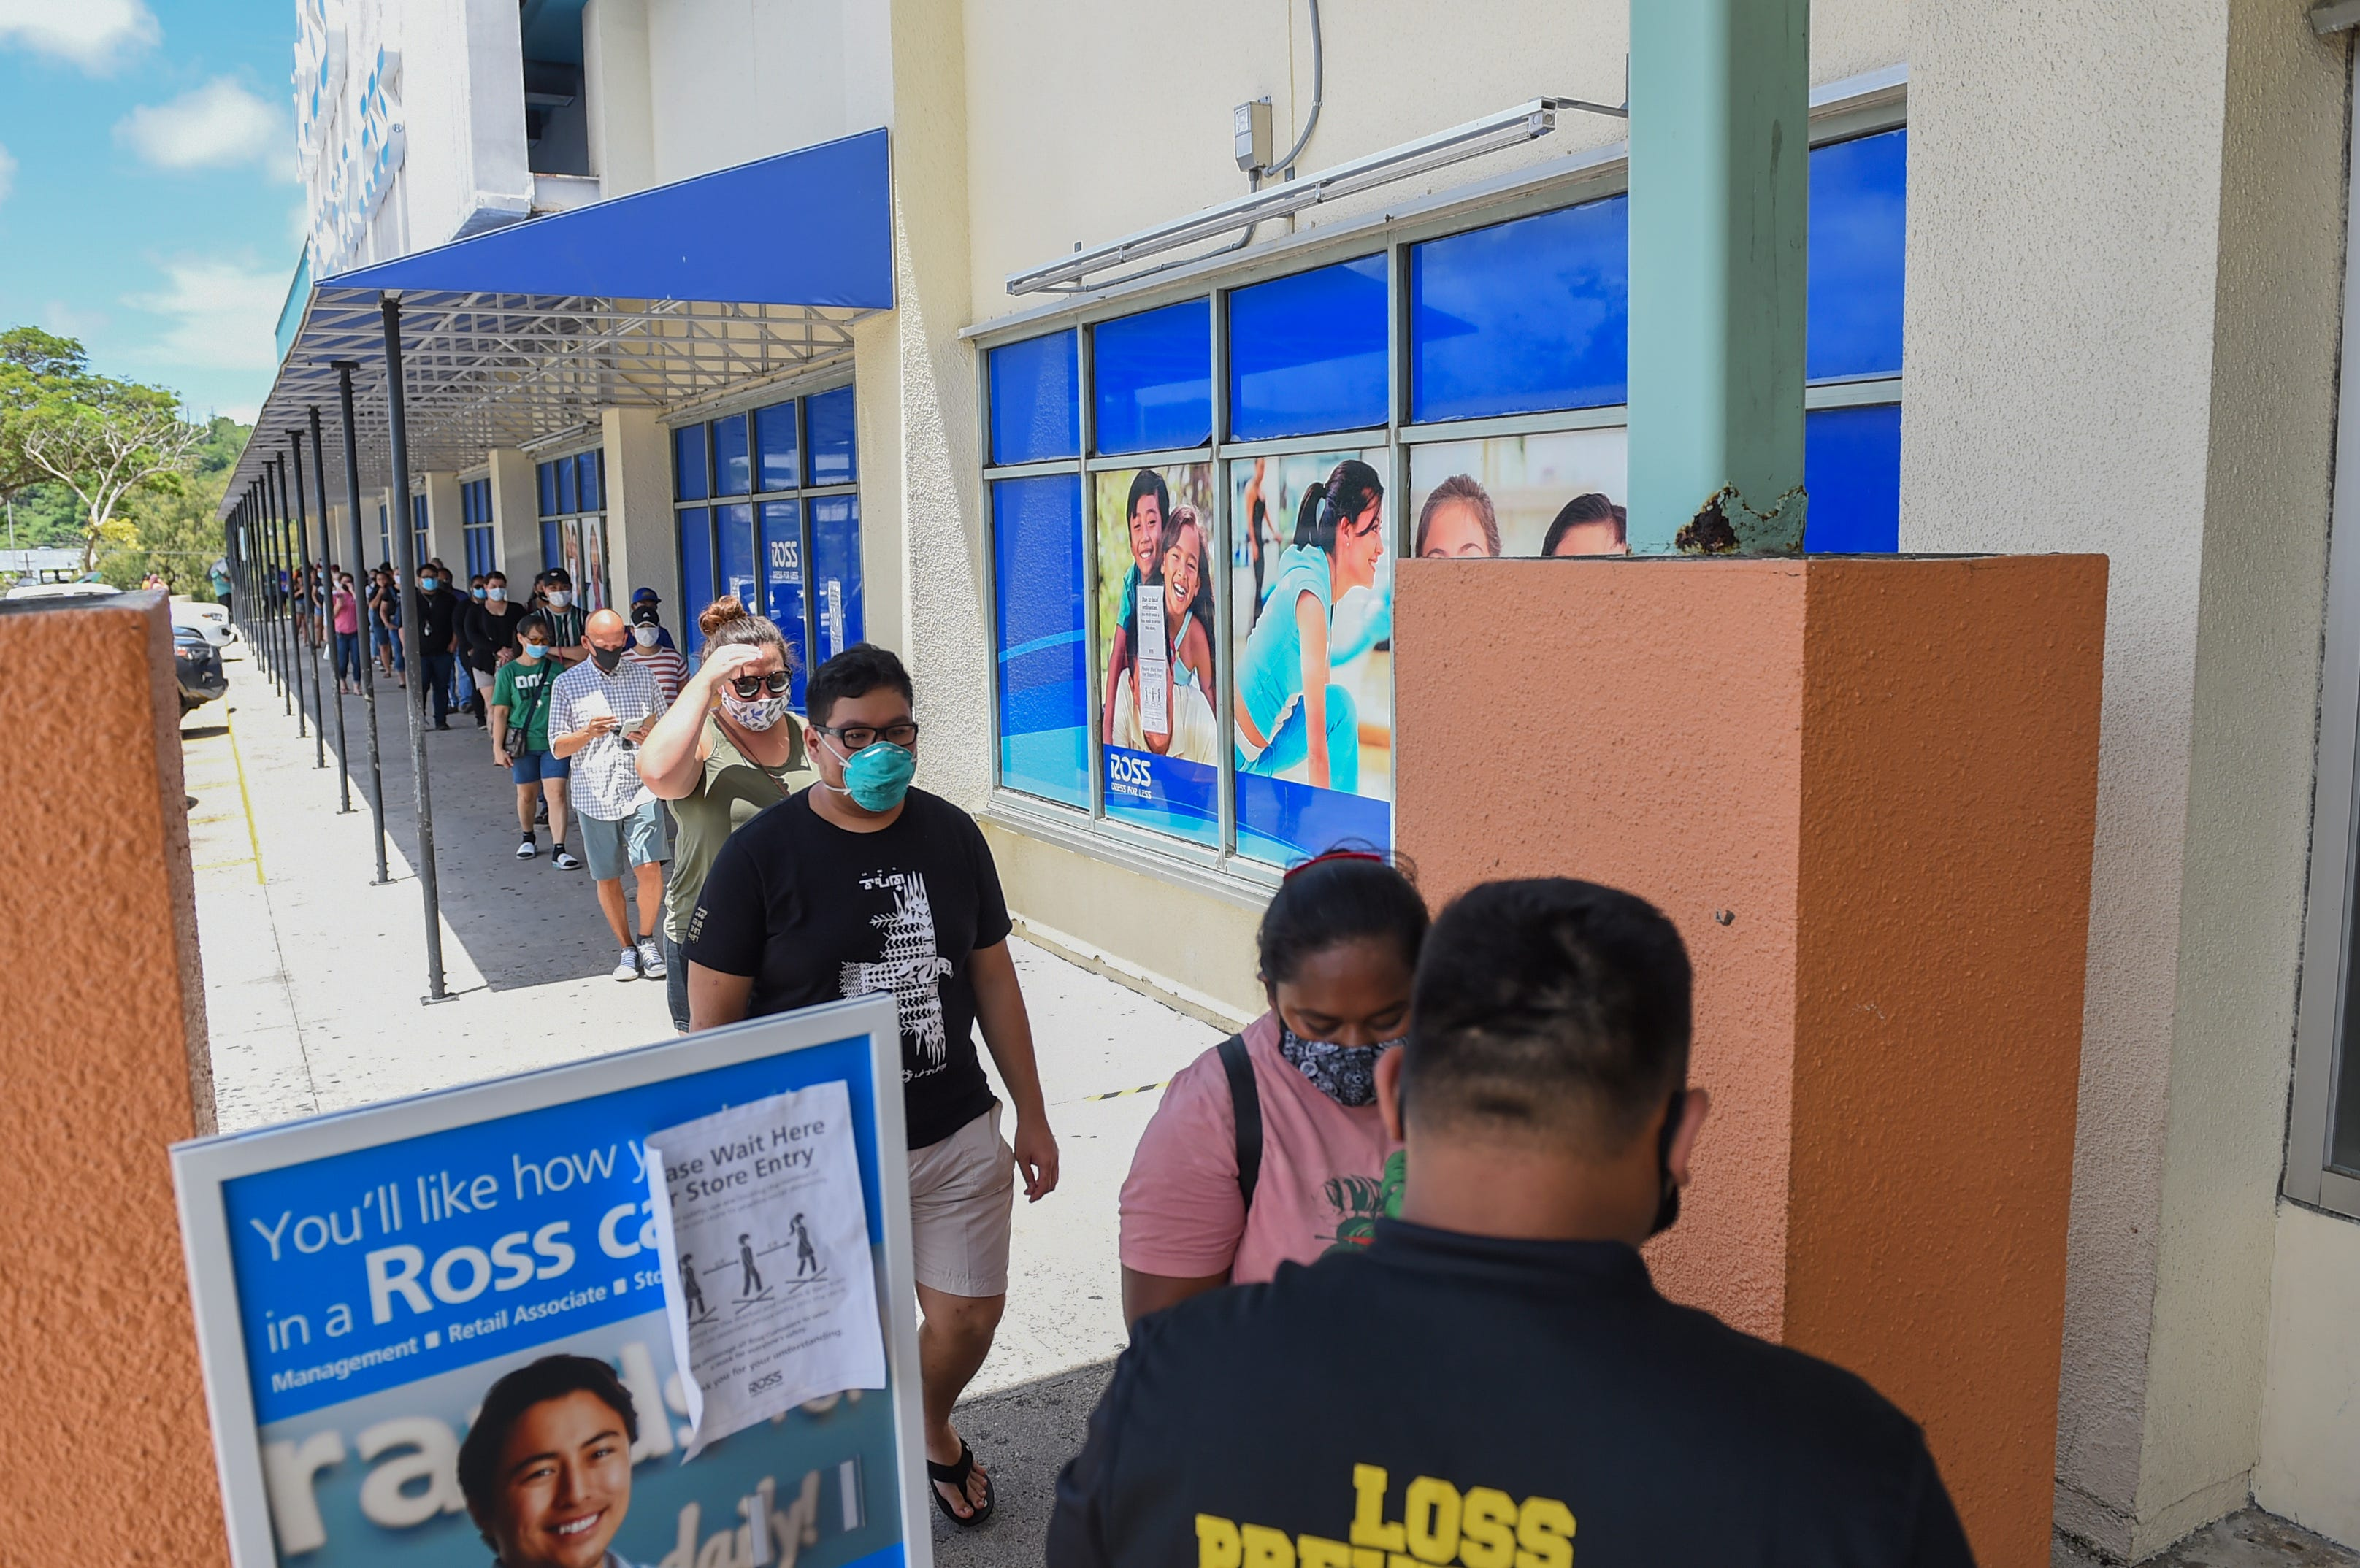 A long line of customers forms during the reopening of Ross Dress for Less at Guam Premier Outlets in Tamuning, May 24, 2020.